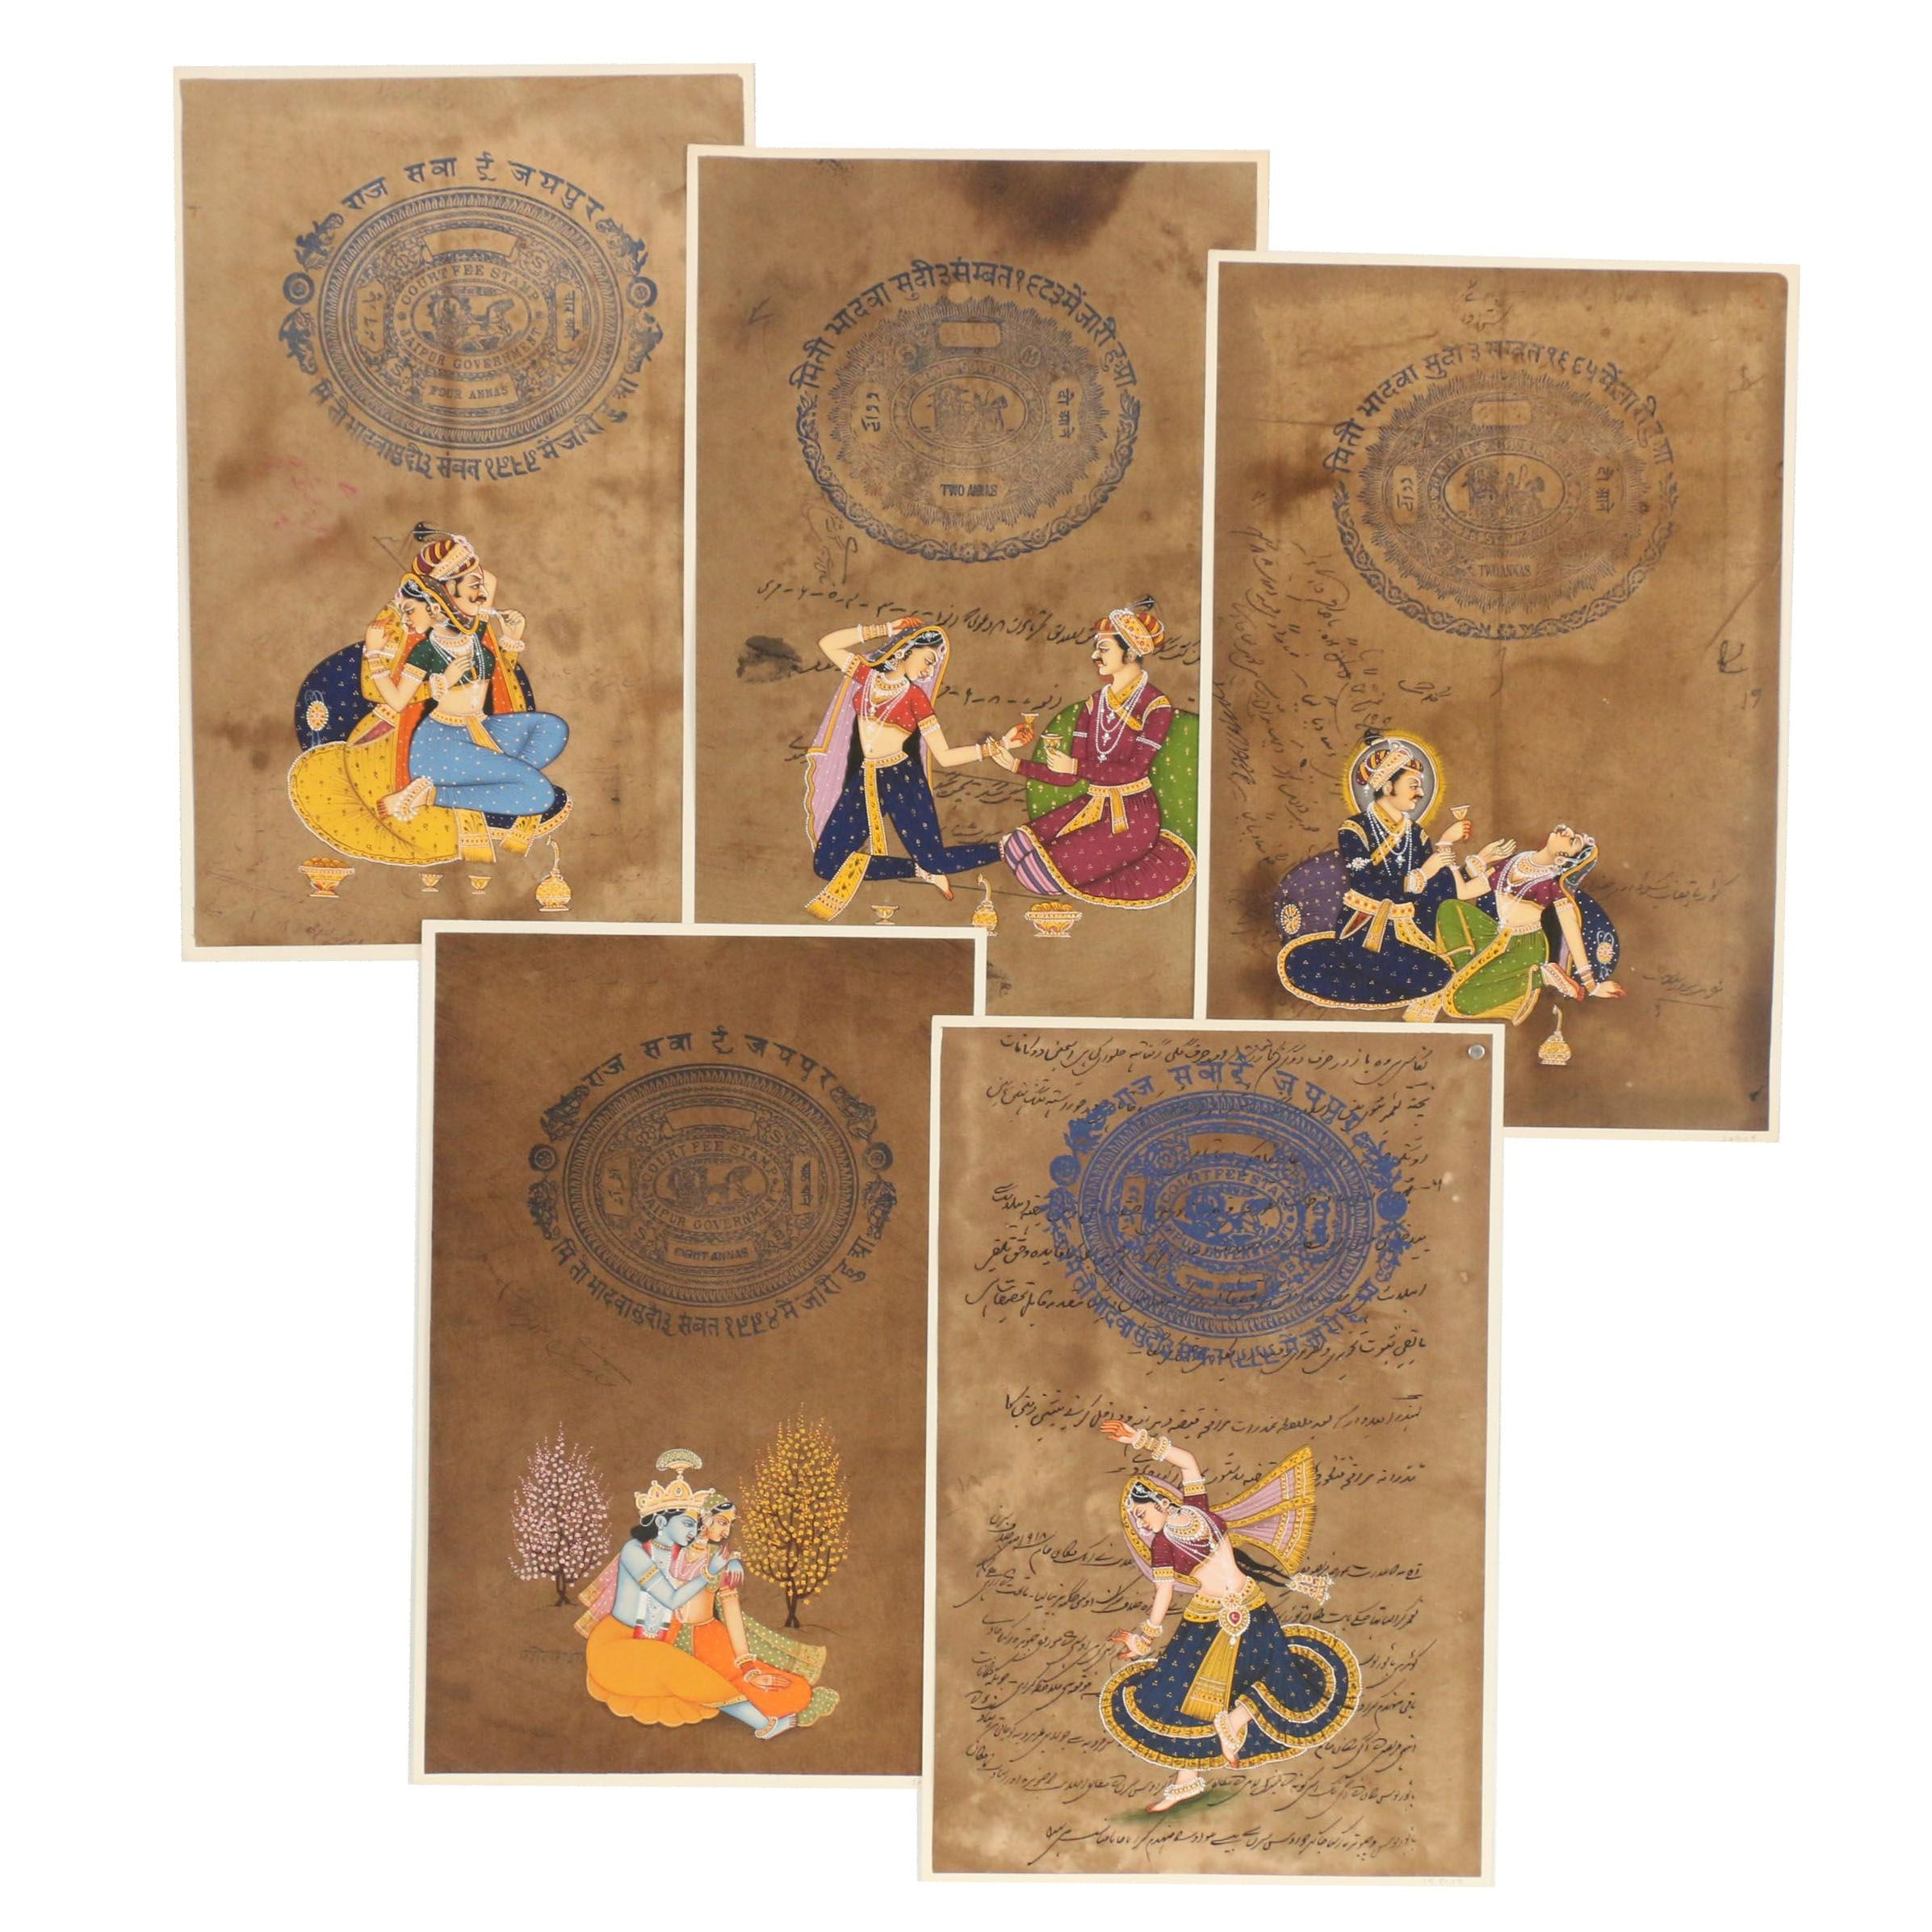 Mughal Style Goauche Paintings with Jaipur Revenue Stamps